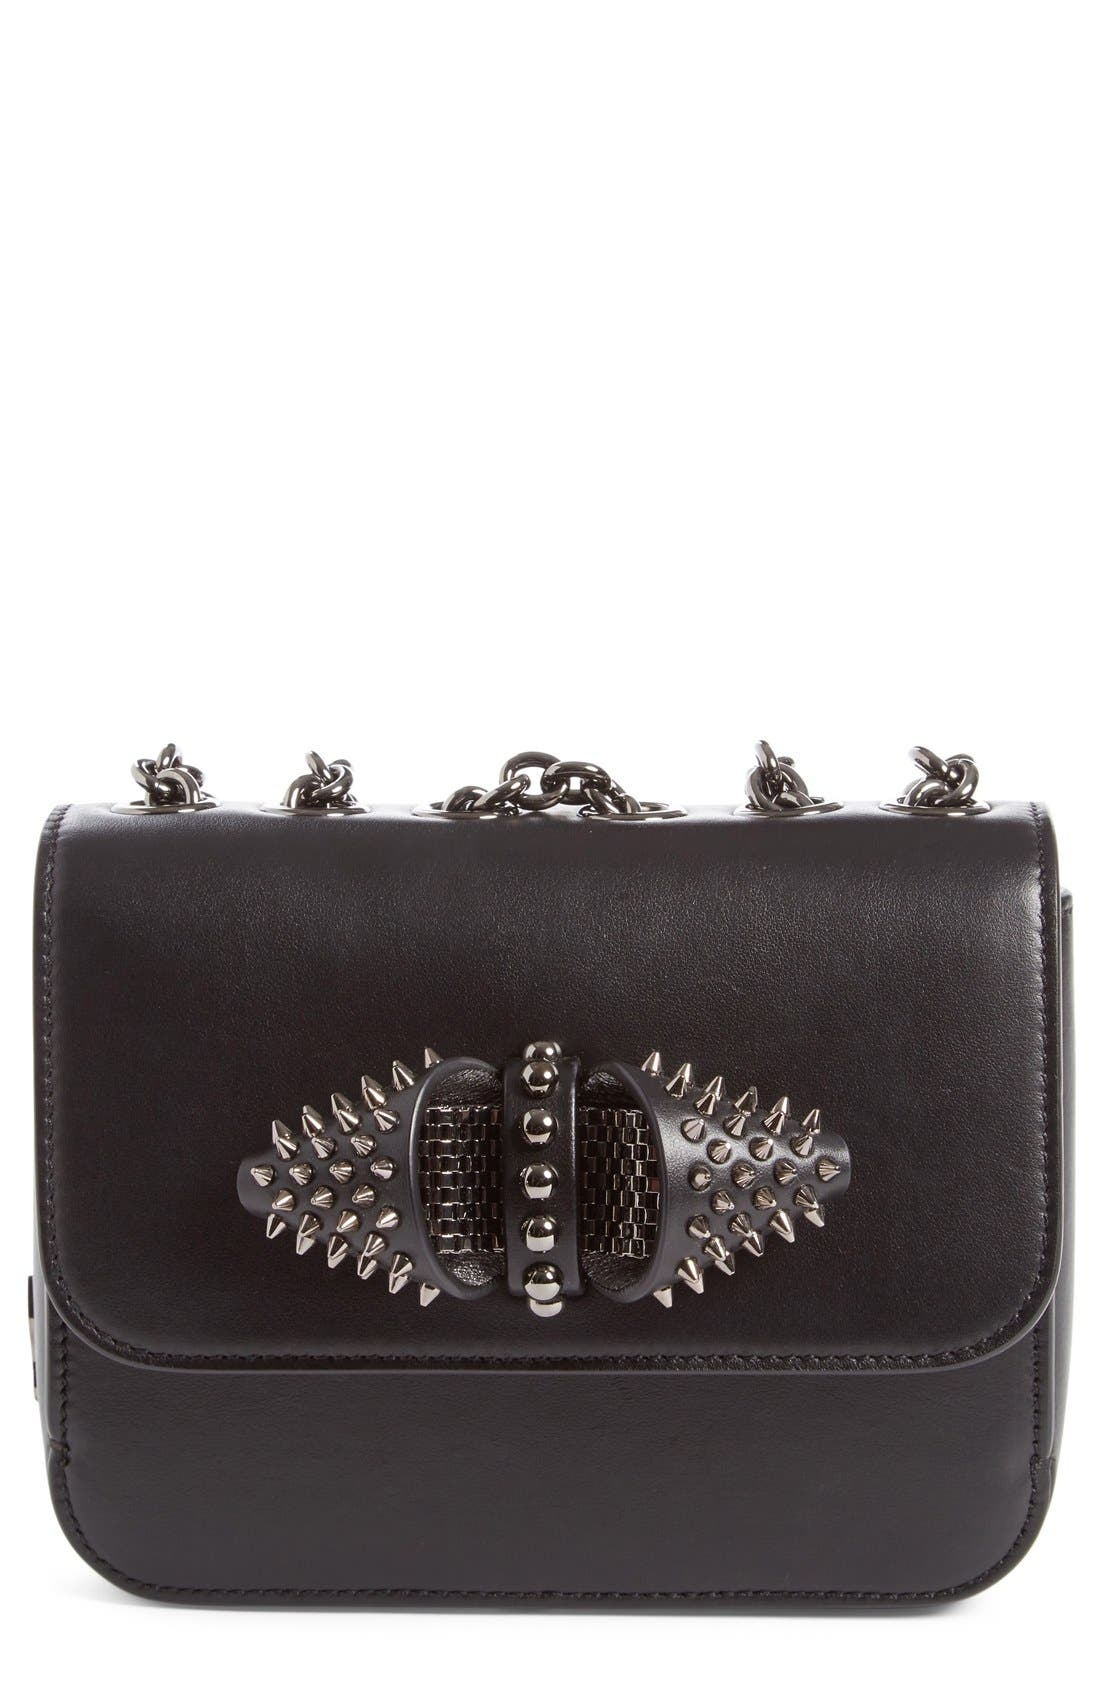 Alternate Image 1 Selected - Christian Louboutin 'Small Sweet Charity' Spiked Calfskin Shoulder/Crossbody Bag